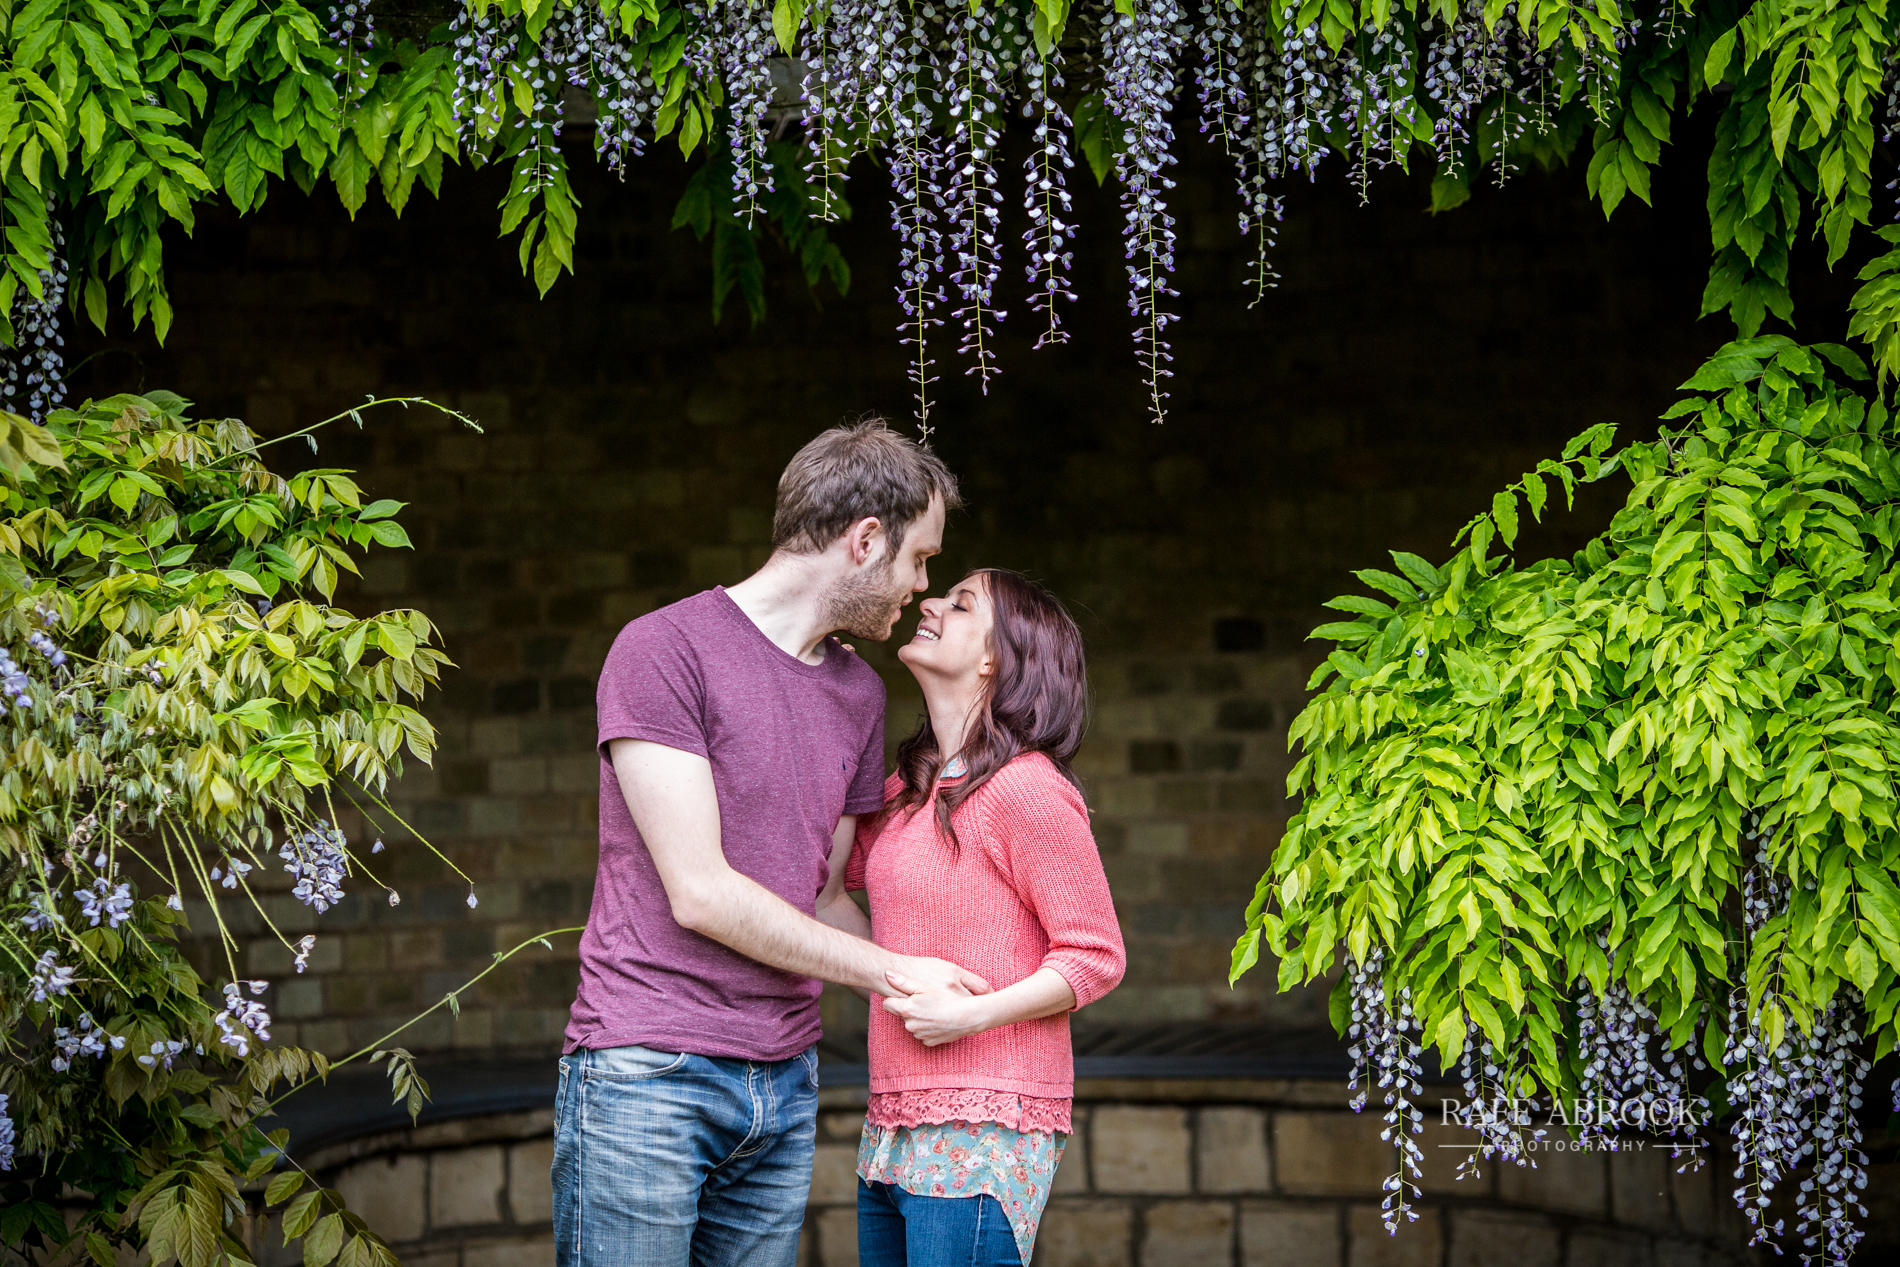 nicola & andy engagement shoot rspb the lodge sandy bedfordshire-5037.jpg